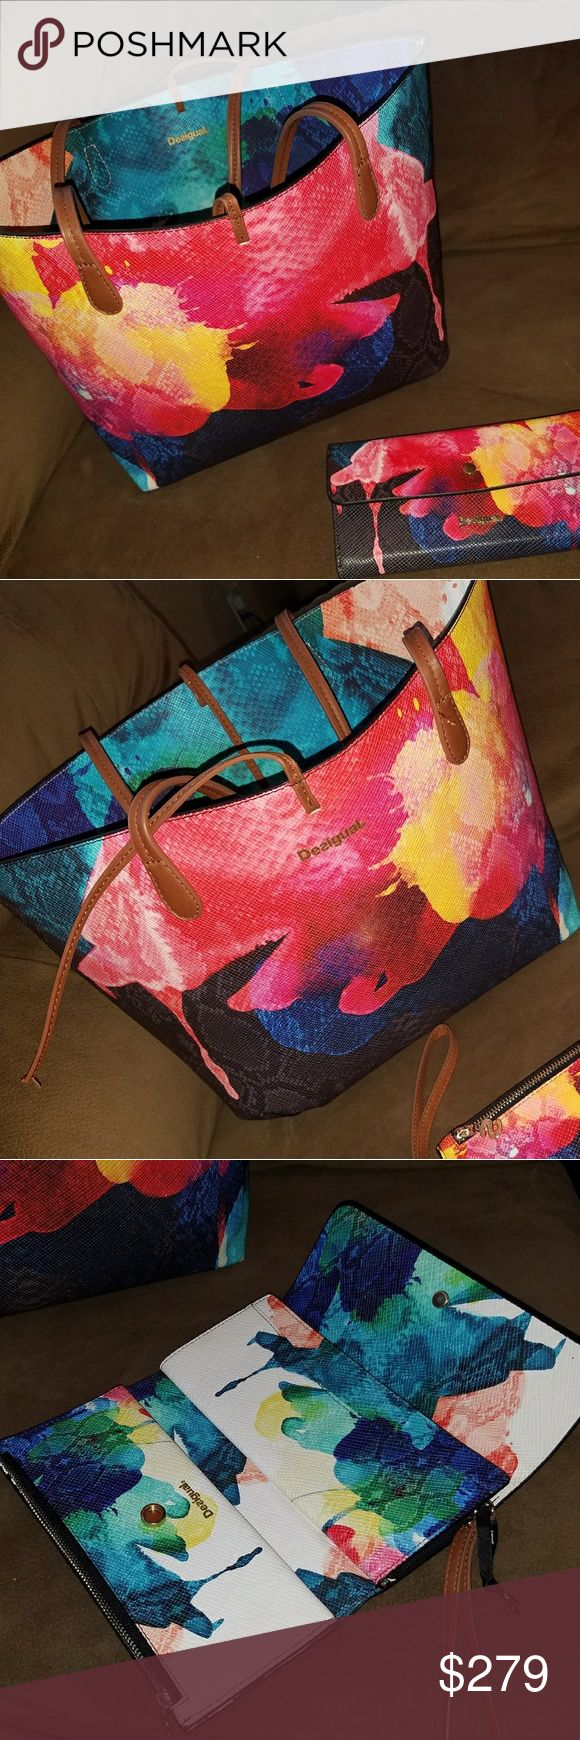 Desigual Handbag & wallet Reversible Handbag and wallet. Wallet is NWOT  Handbag has been used.   Some pen marks on white part as it was only used as interior. Desigual Bags Shoulder Bags